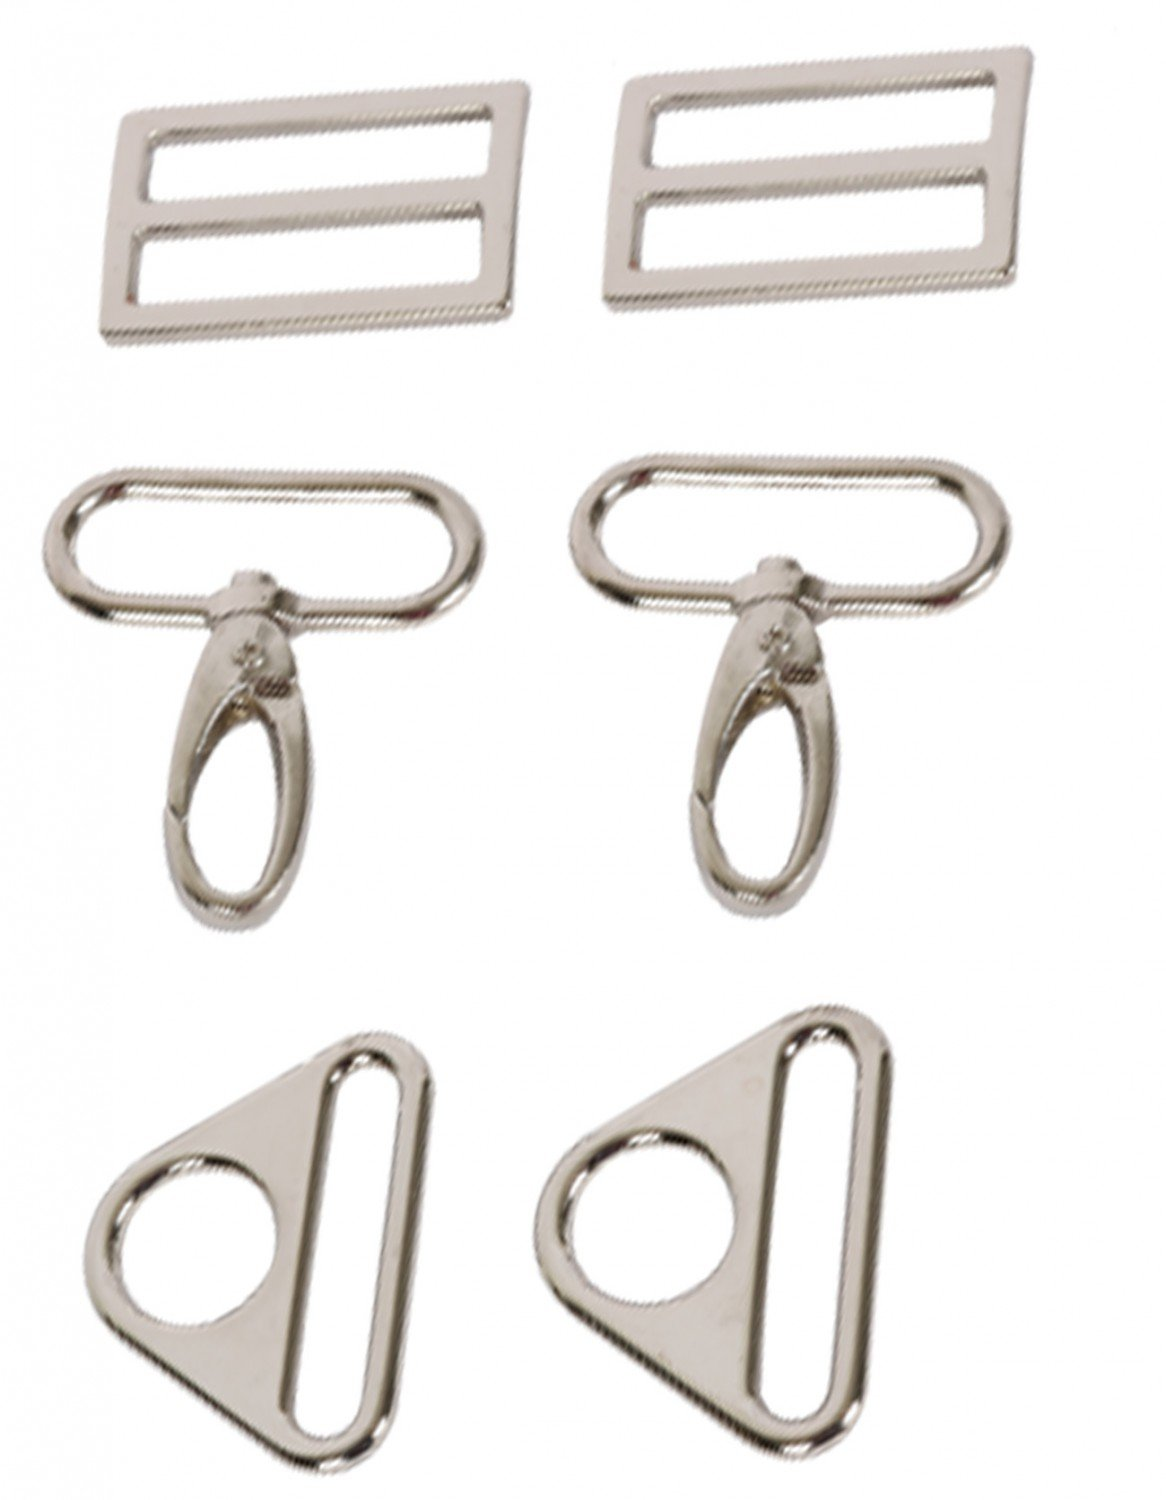 Hardware Set 3950 1-1/2in Nickel